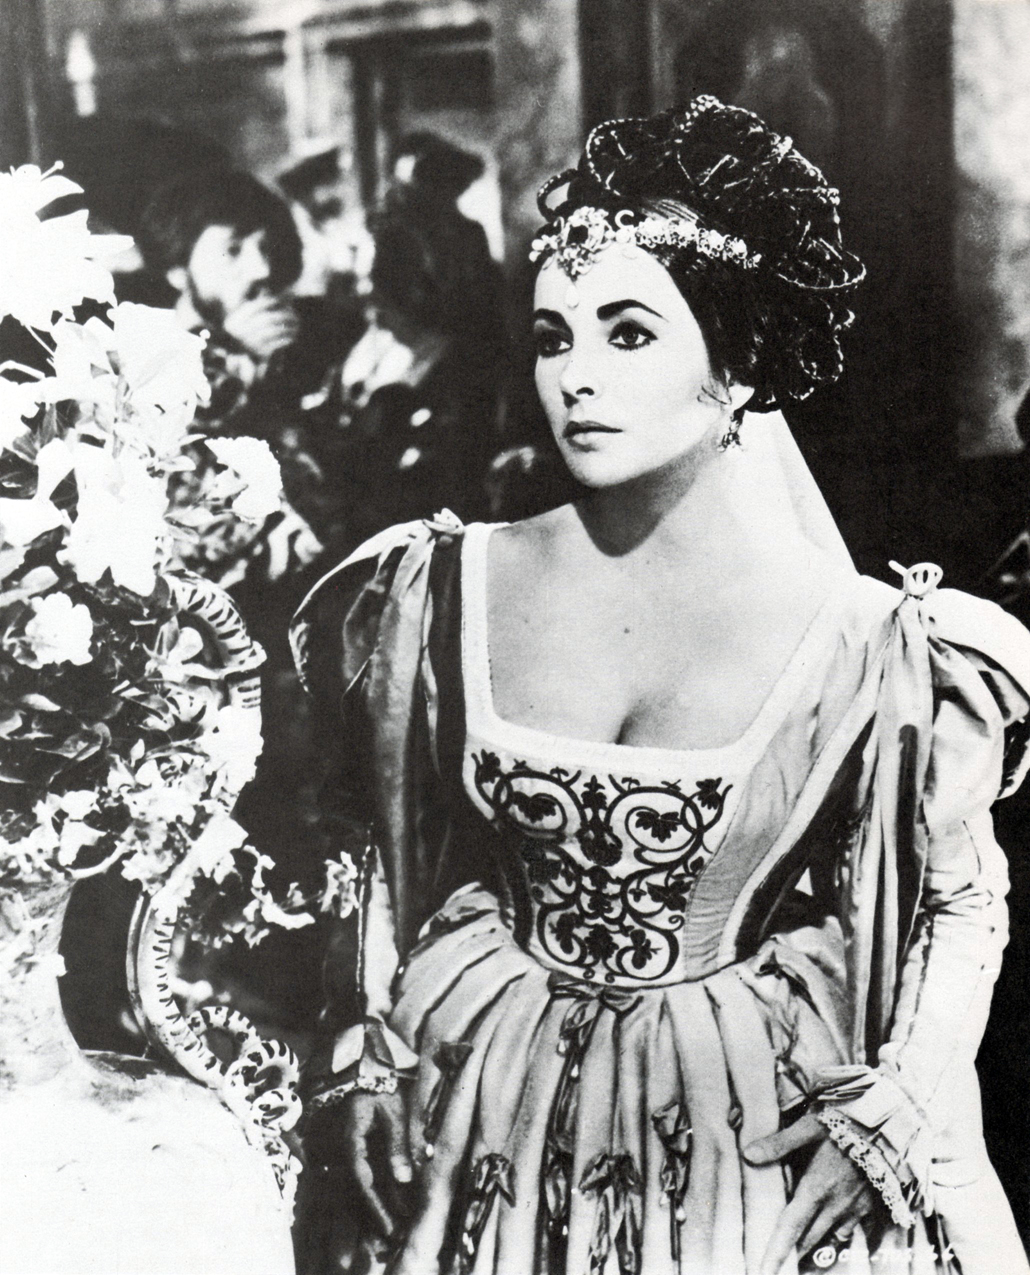 http://3.bp.blogspot.com/-N1w82eQinnk/UTmyDZEuUDI/AAAAAAAAJos/Ra_kMibmrQk/s1600/Elizabeth+Taylor,+The+Taming+of+the+Shrew,+1967.jpg